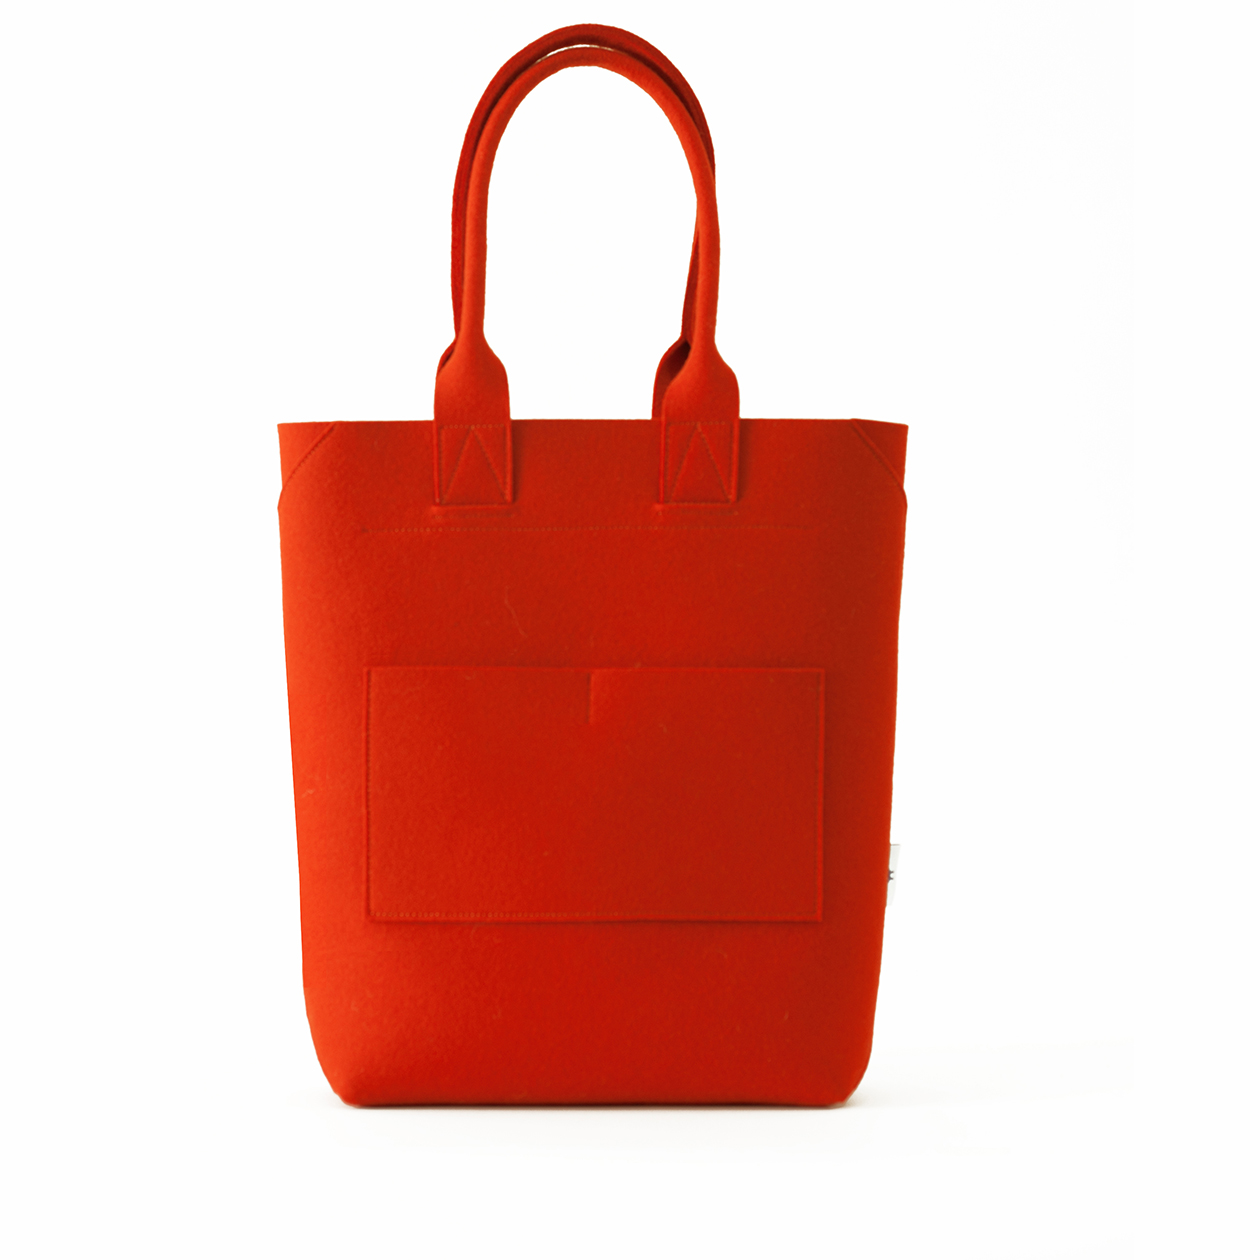 TOTE bag - felt - orange